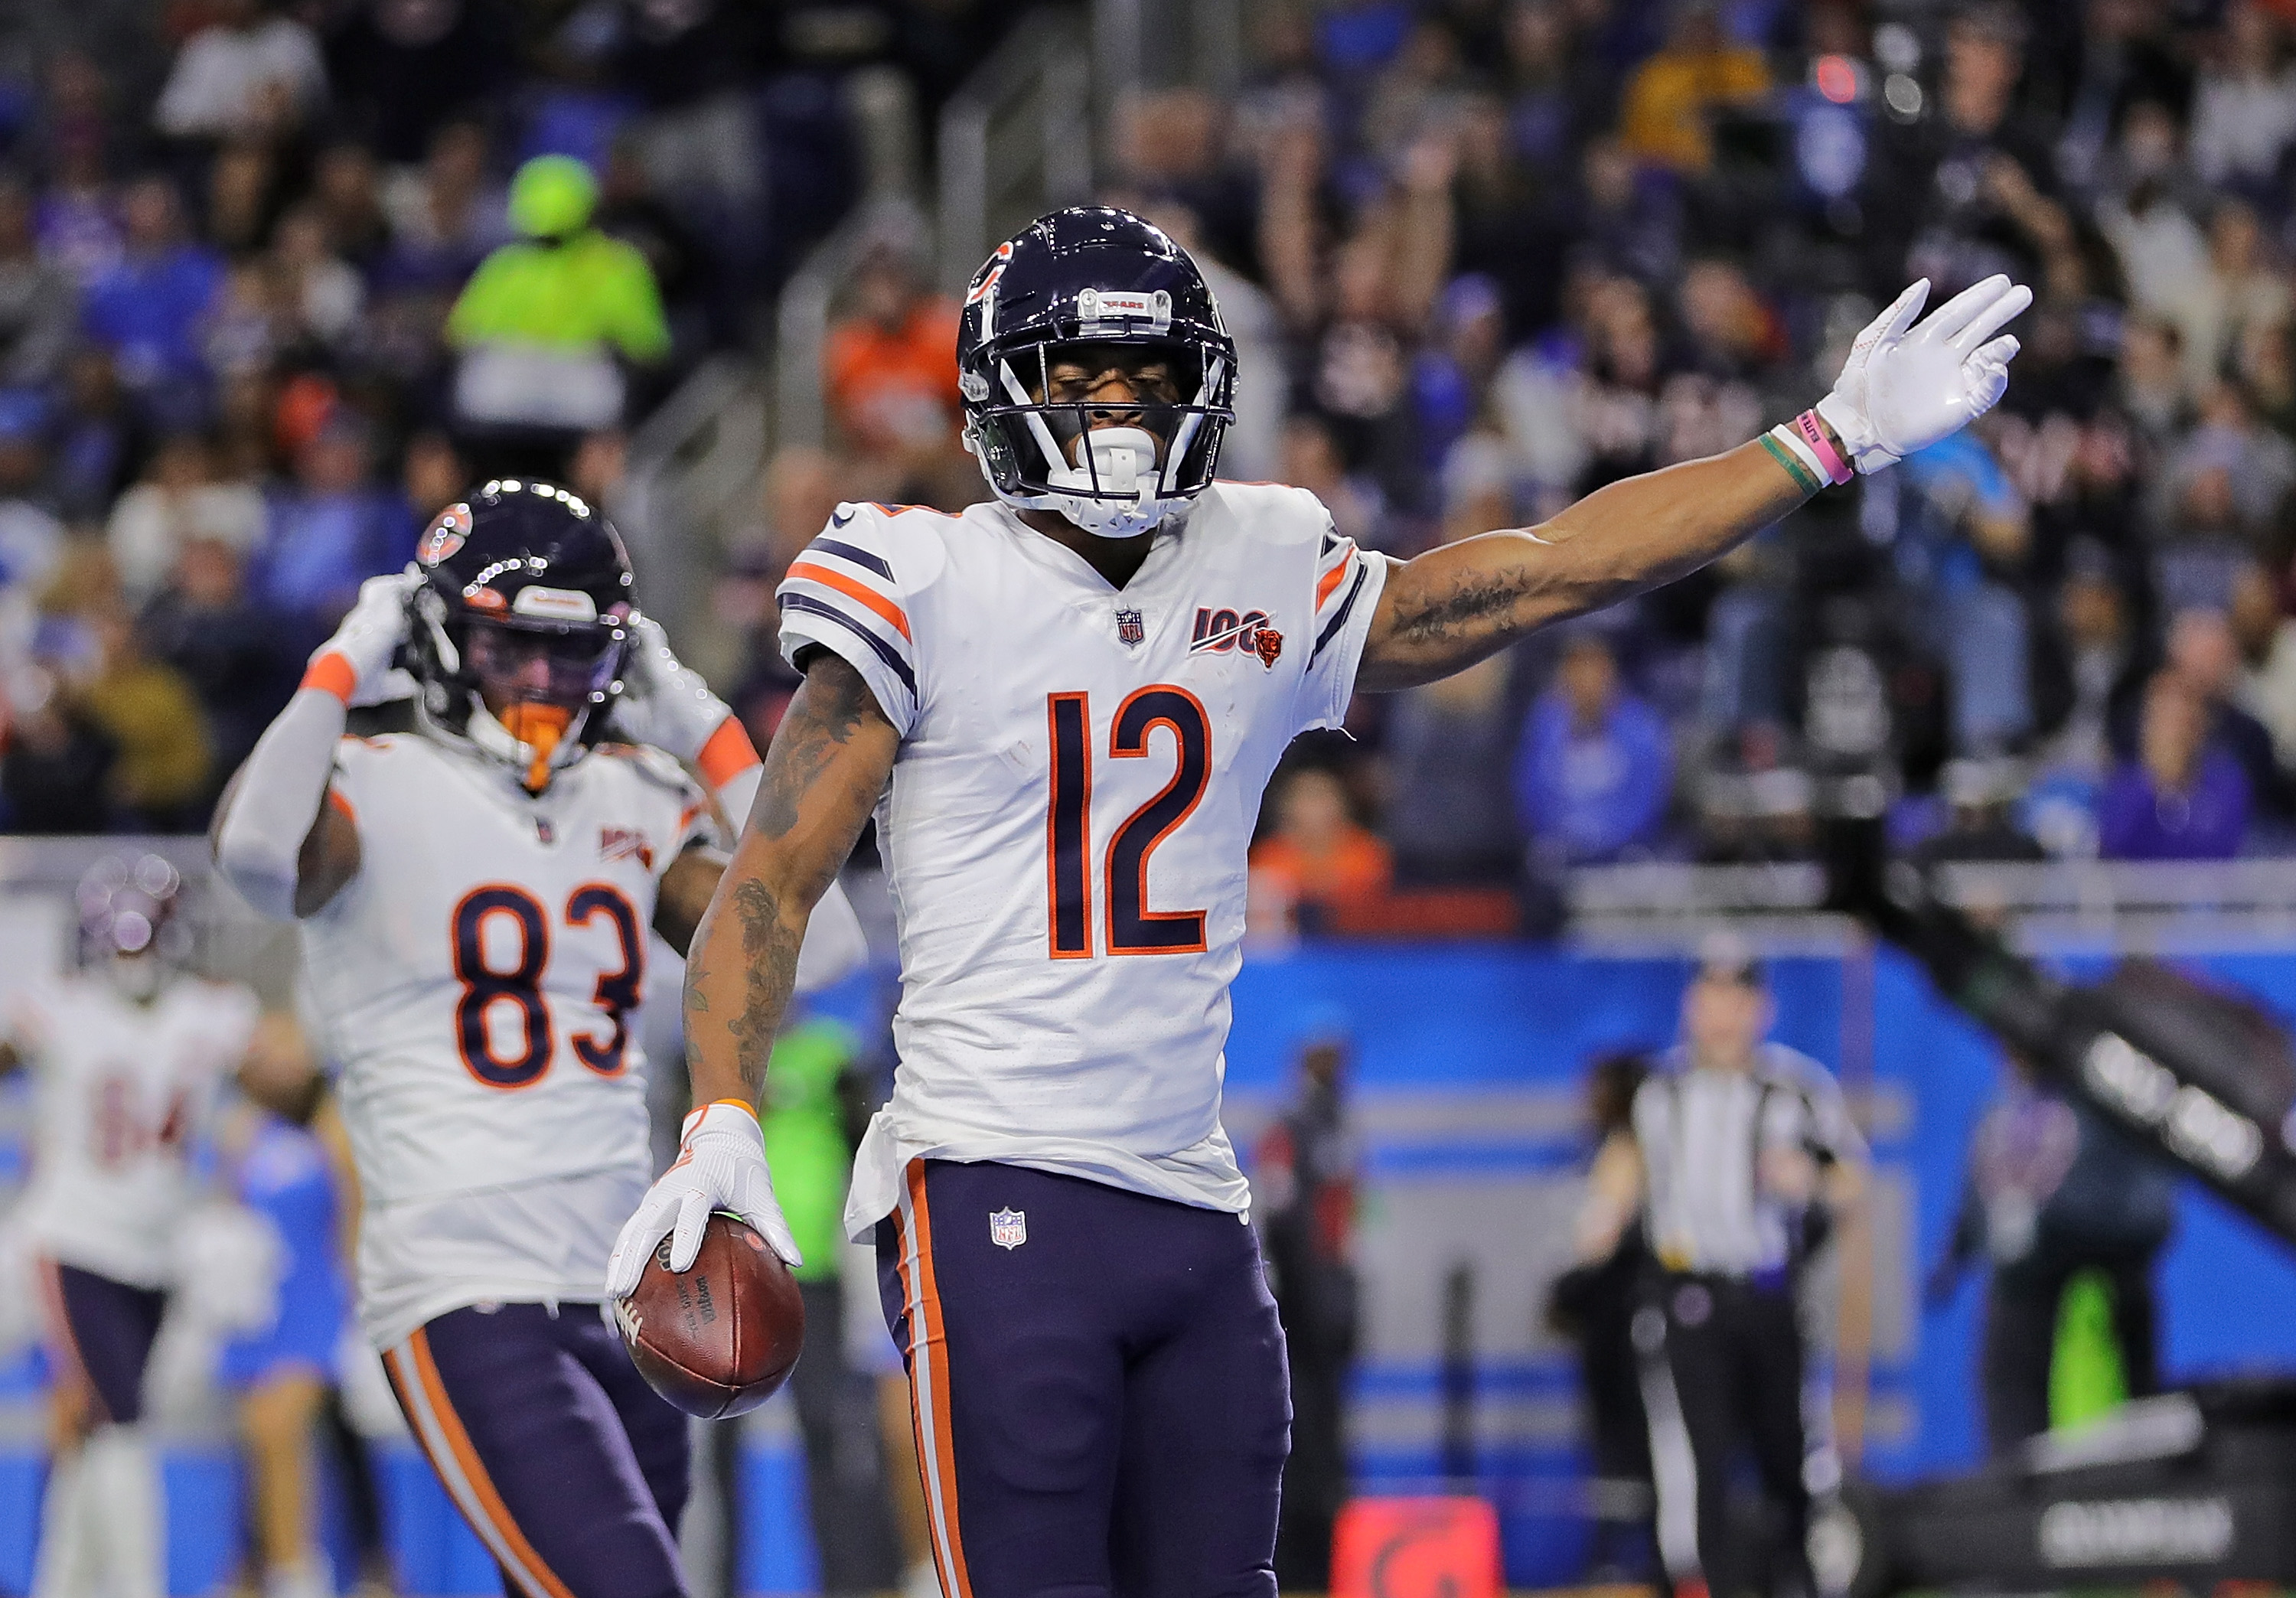 Bears receiver Allen Robinson has been nominated for Walter Payton Man of the Year.